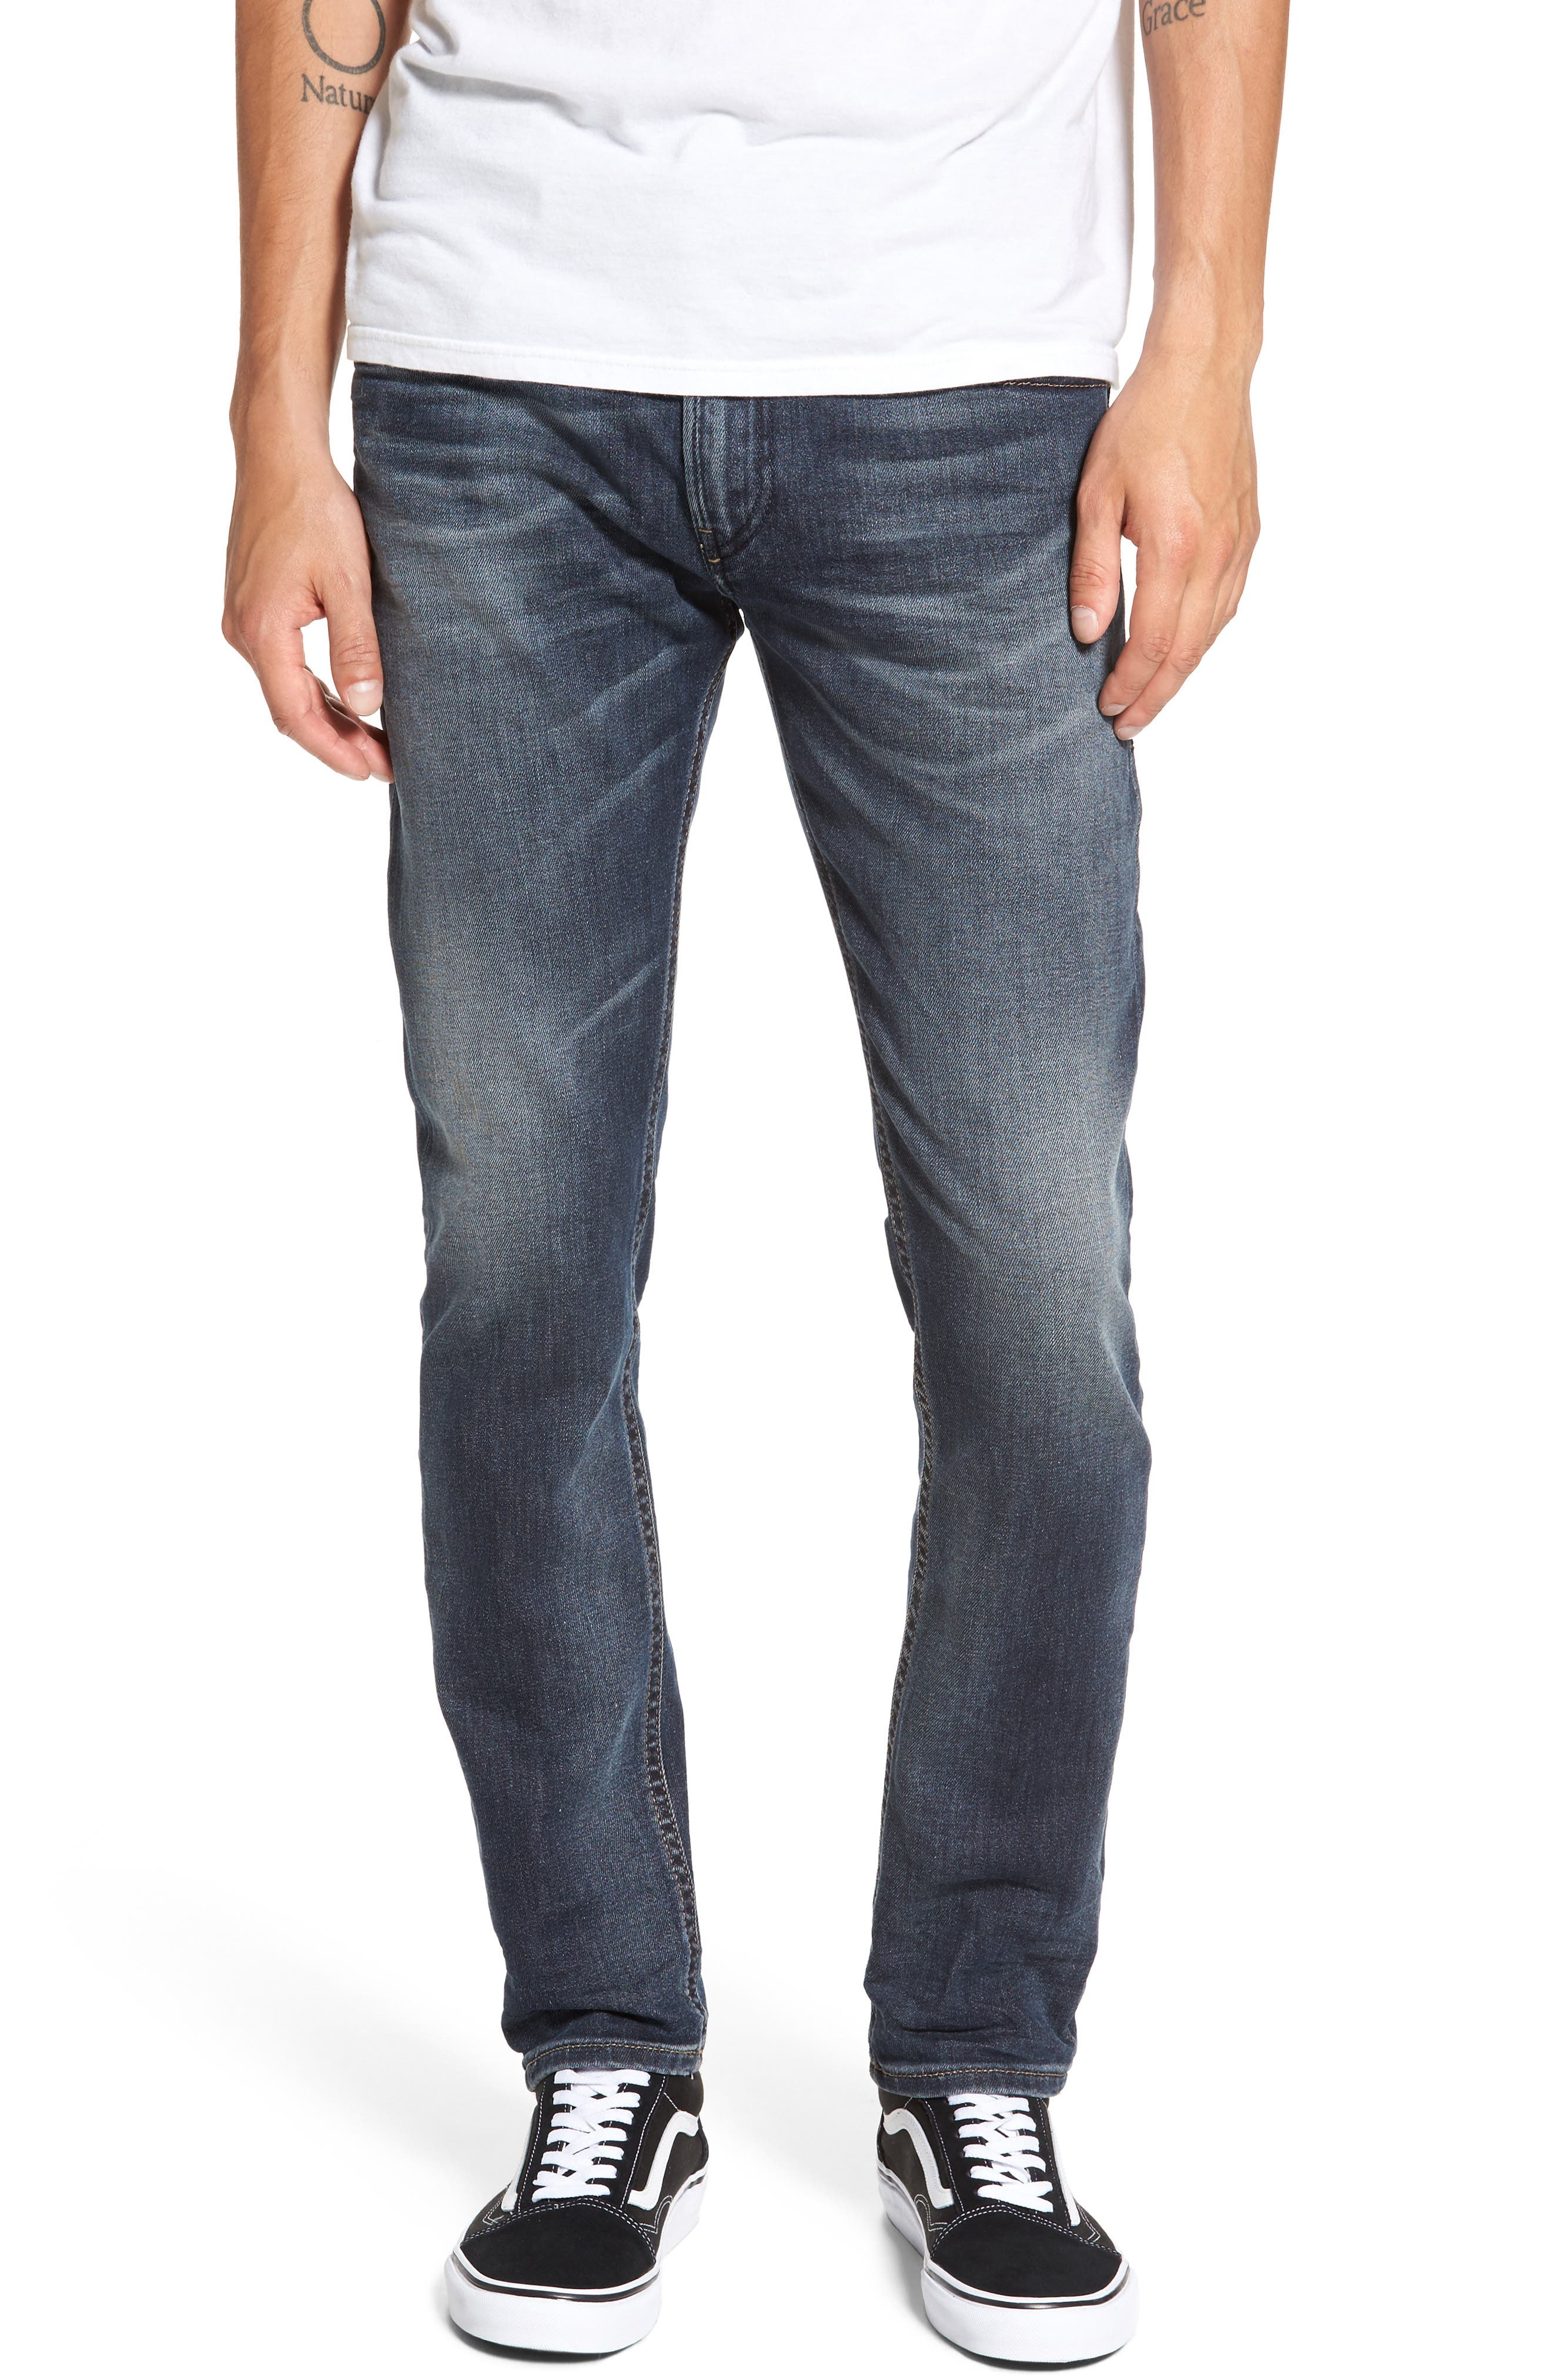 Thommer Slim Fit Jeans,                         Main,                         color, 400